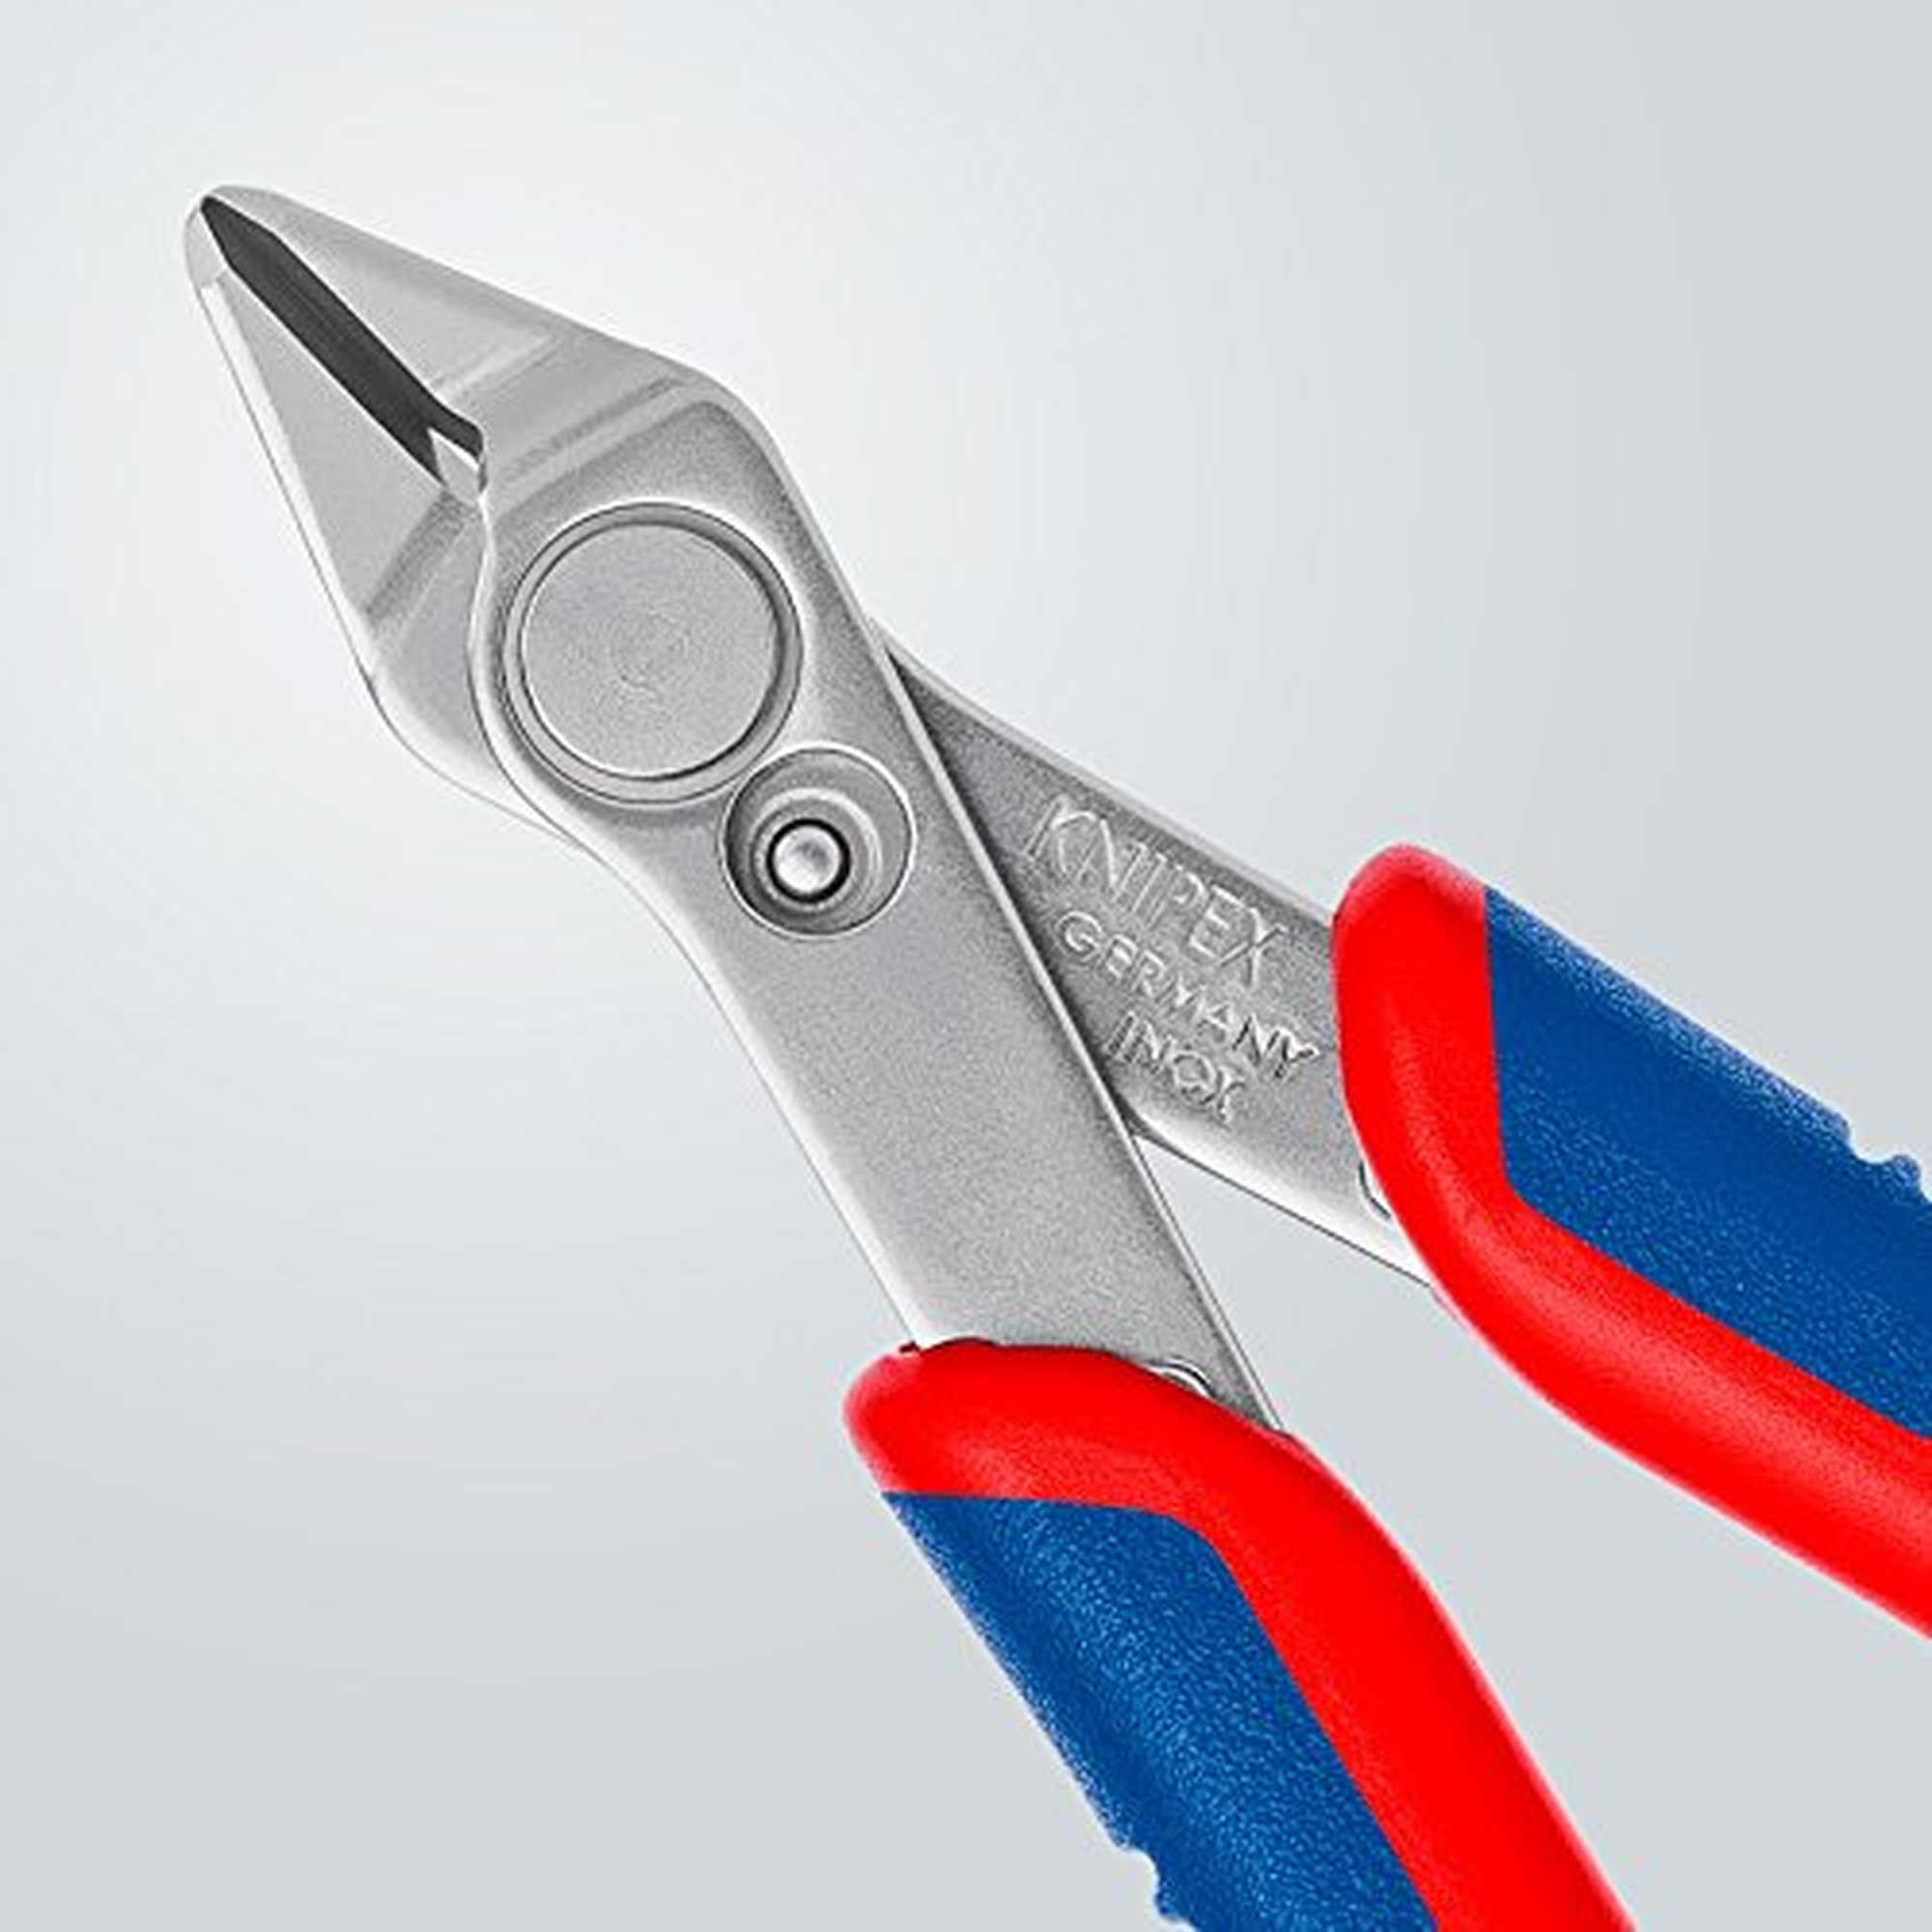 KNIPEX Electronic-Super-Knips® 125 mm, 78 03 125